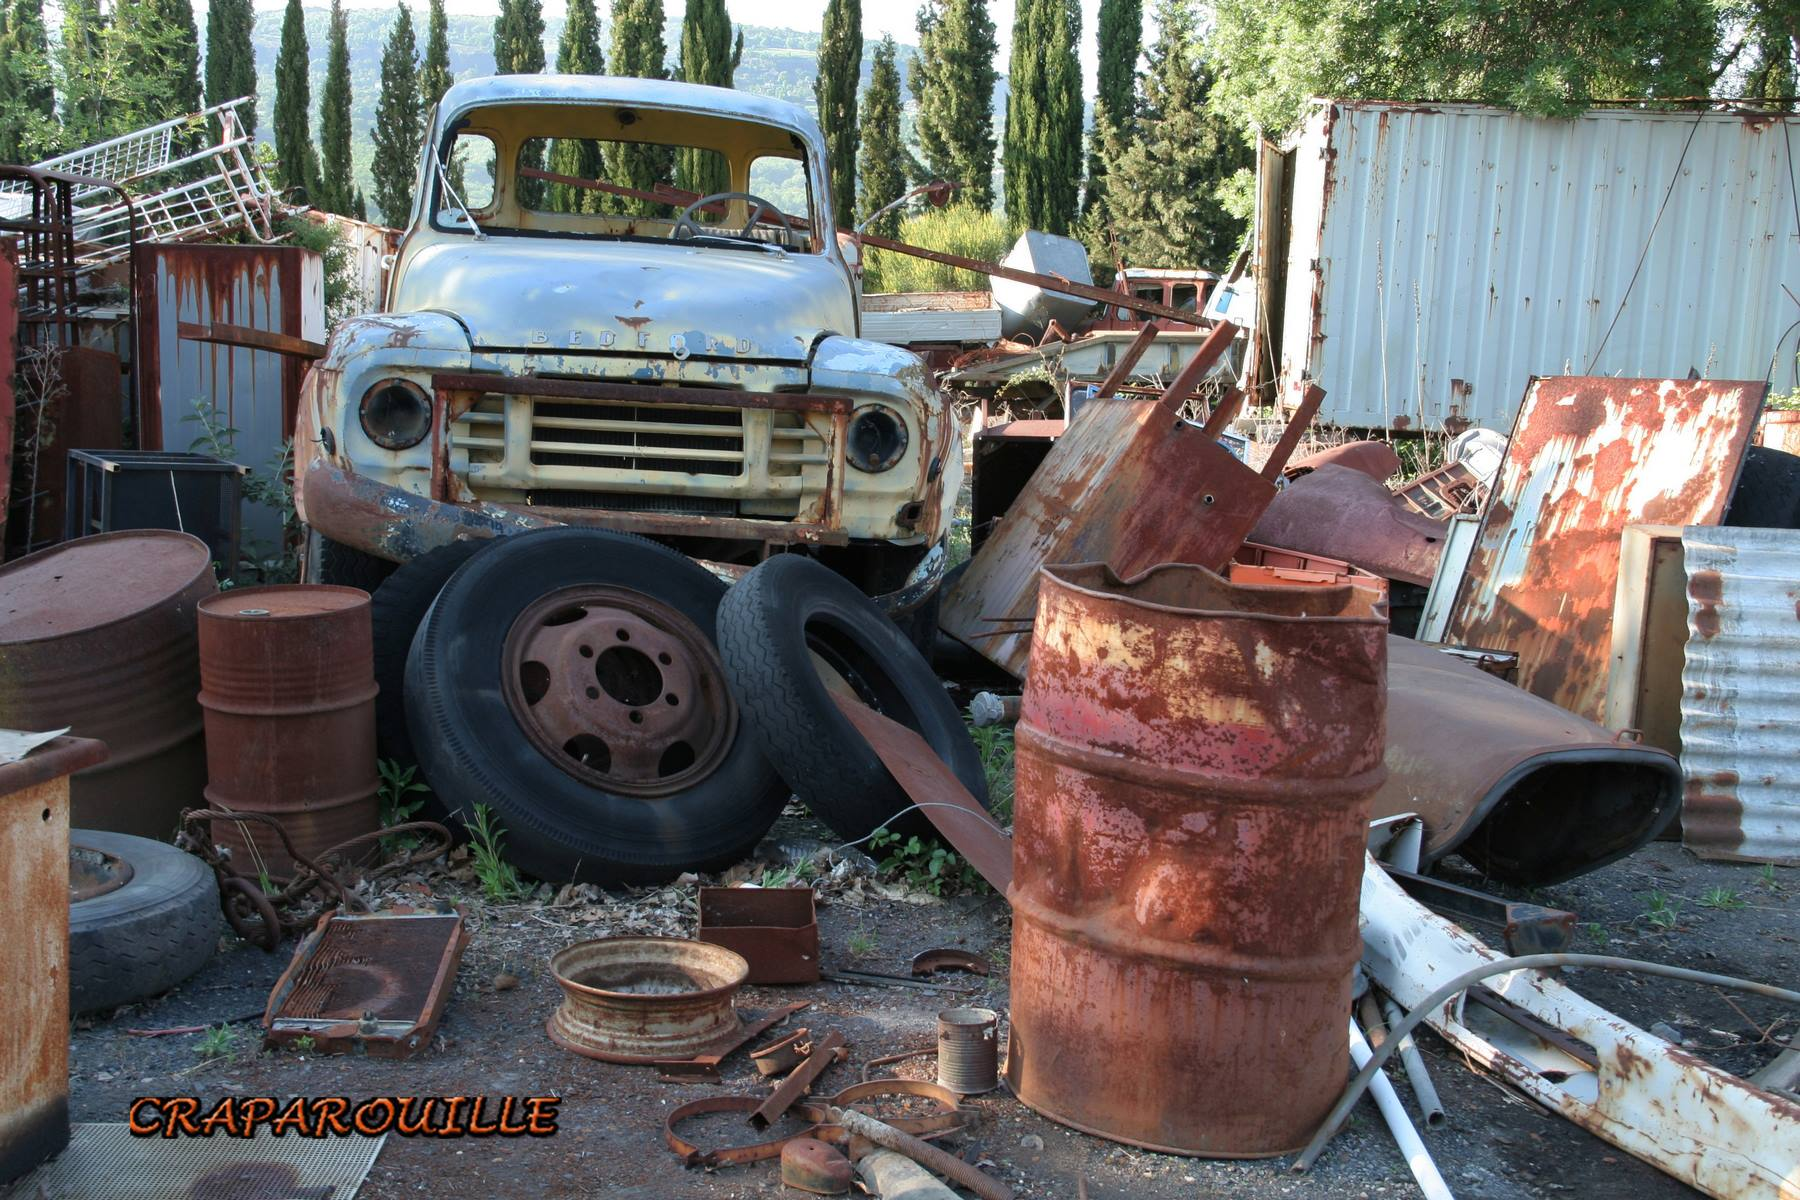 Photography-Diamonds-in-Rust-Craparouille-155